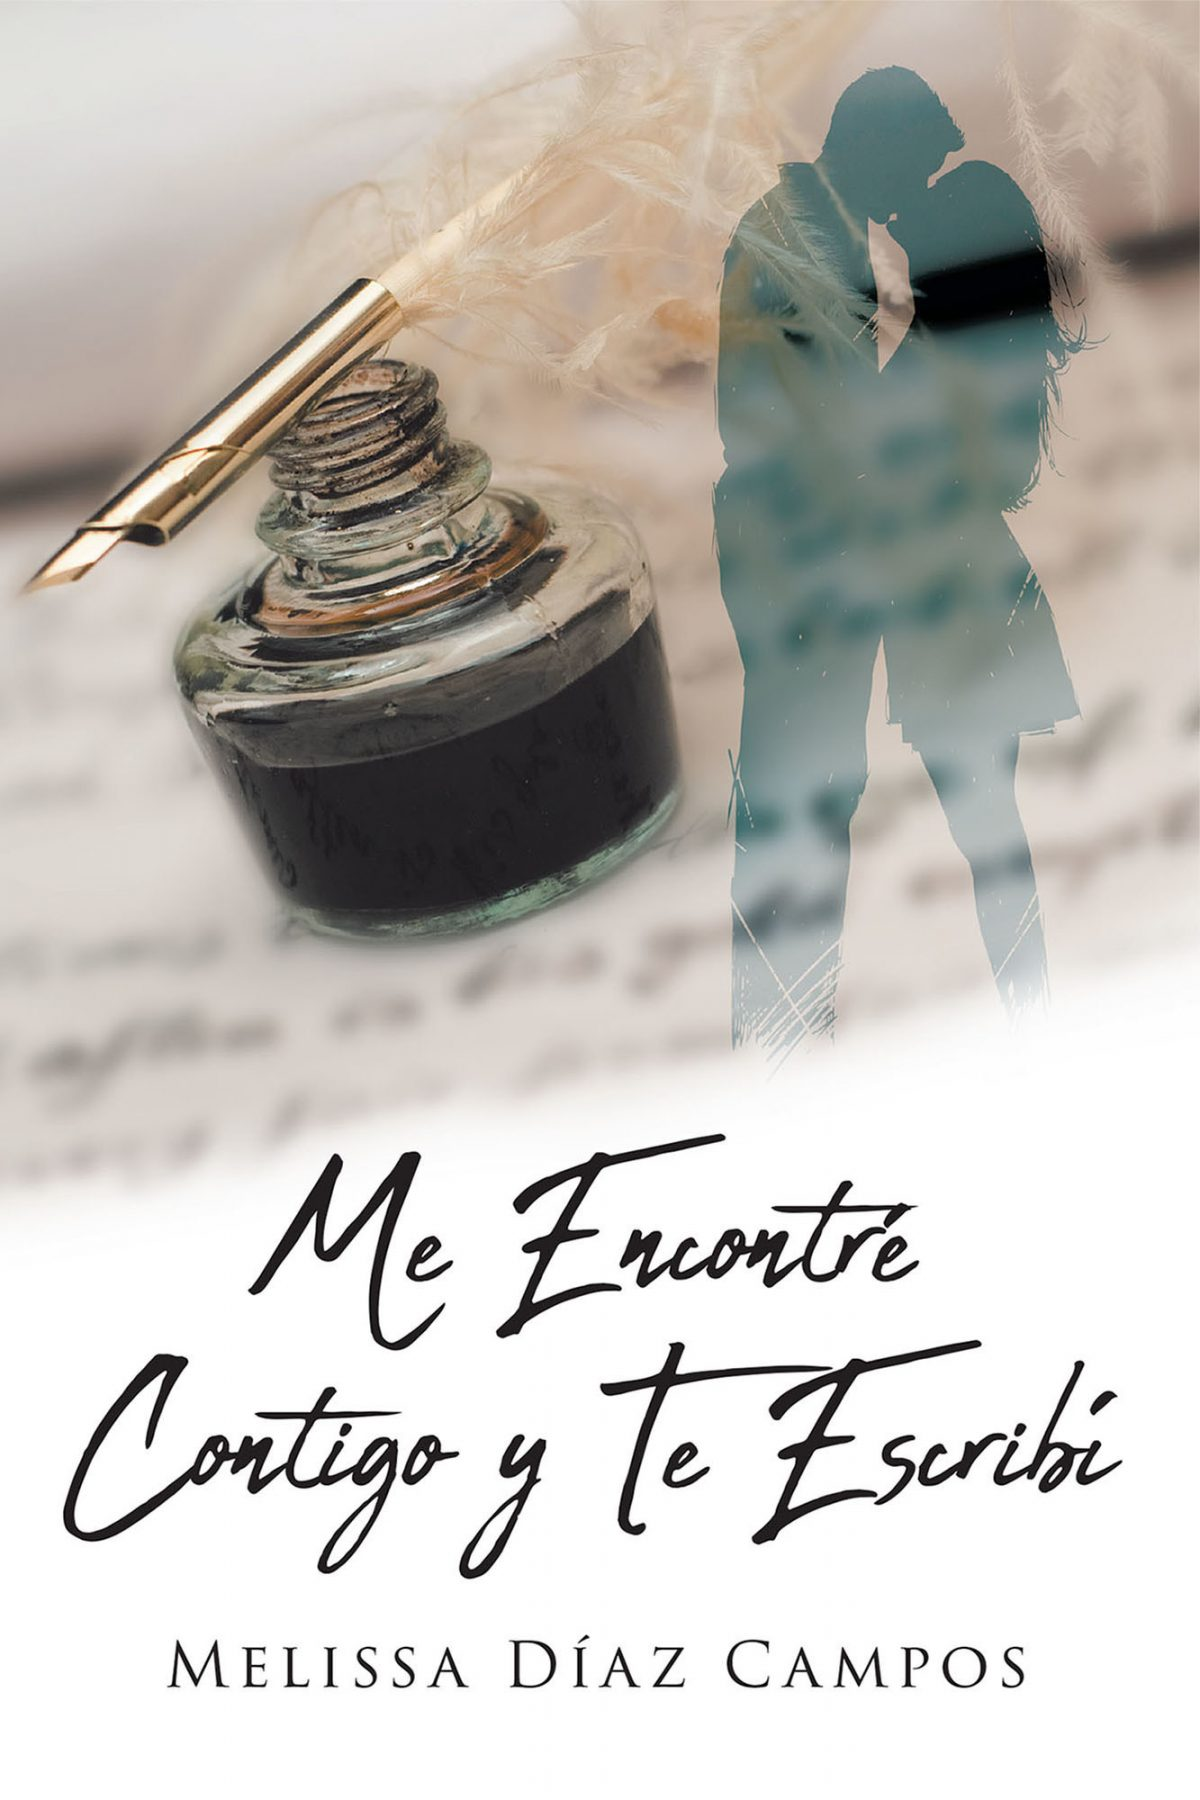 Melissa Díaz Campos's new book Me Encontré Contigo y te Escribí, a stirring collection of narratives that reflect on humanity's deepest emotions and thoughts